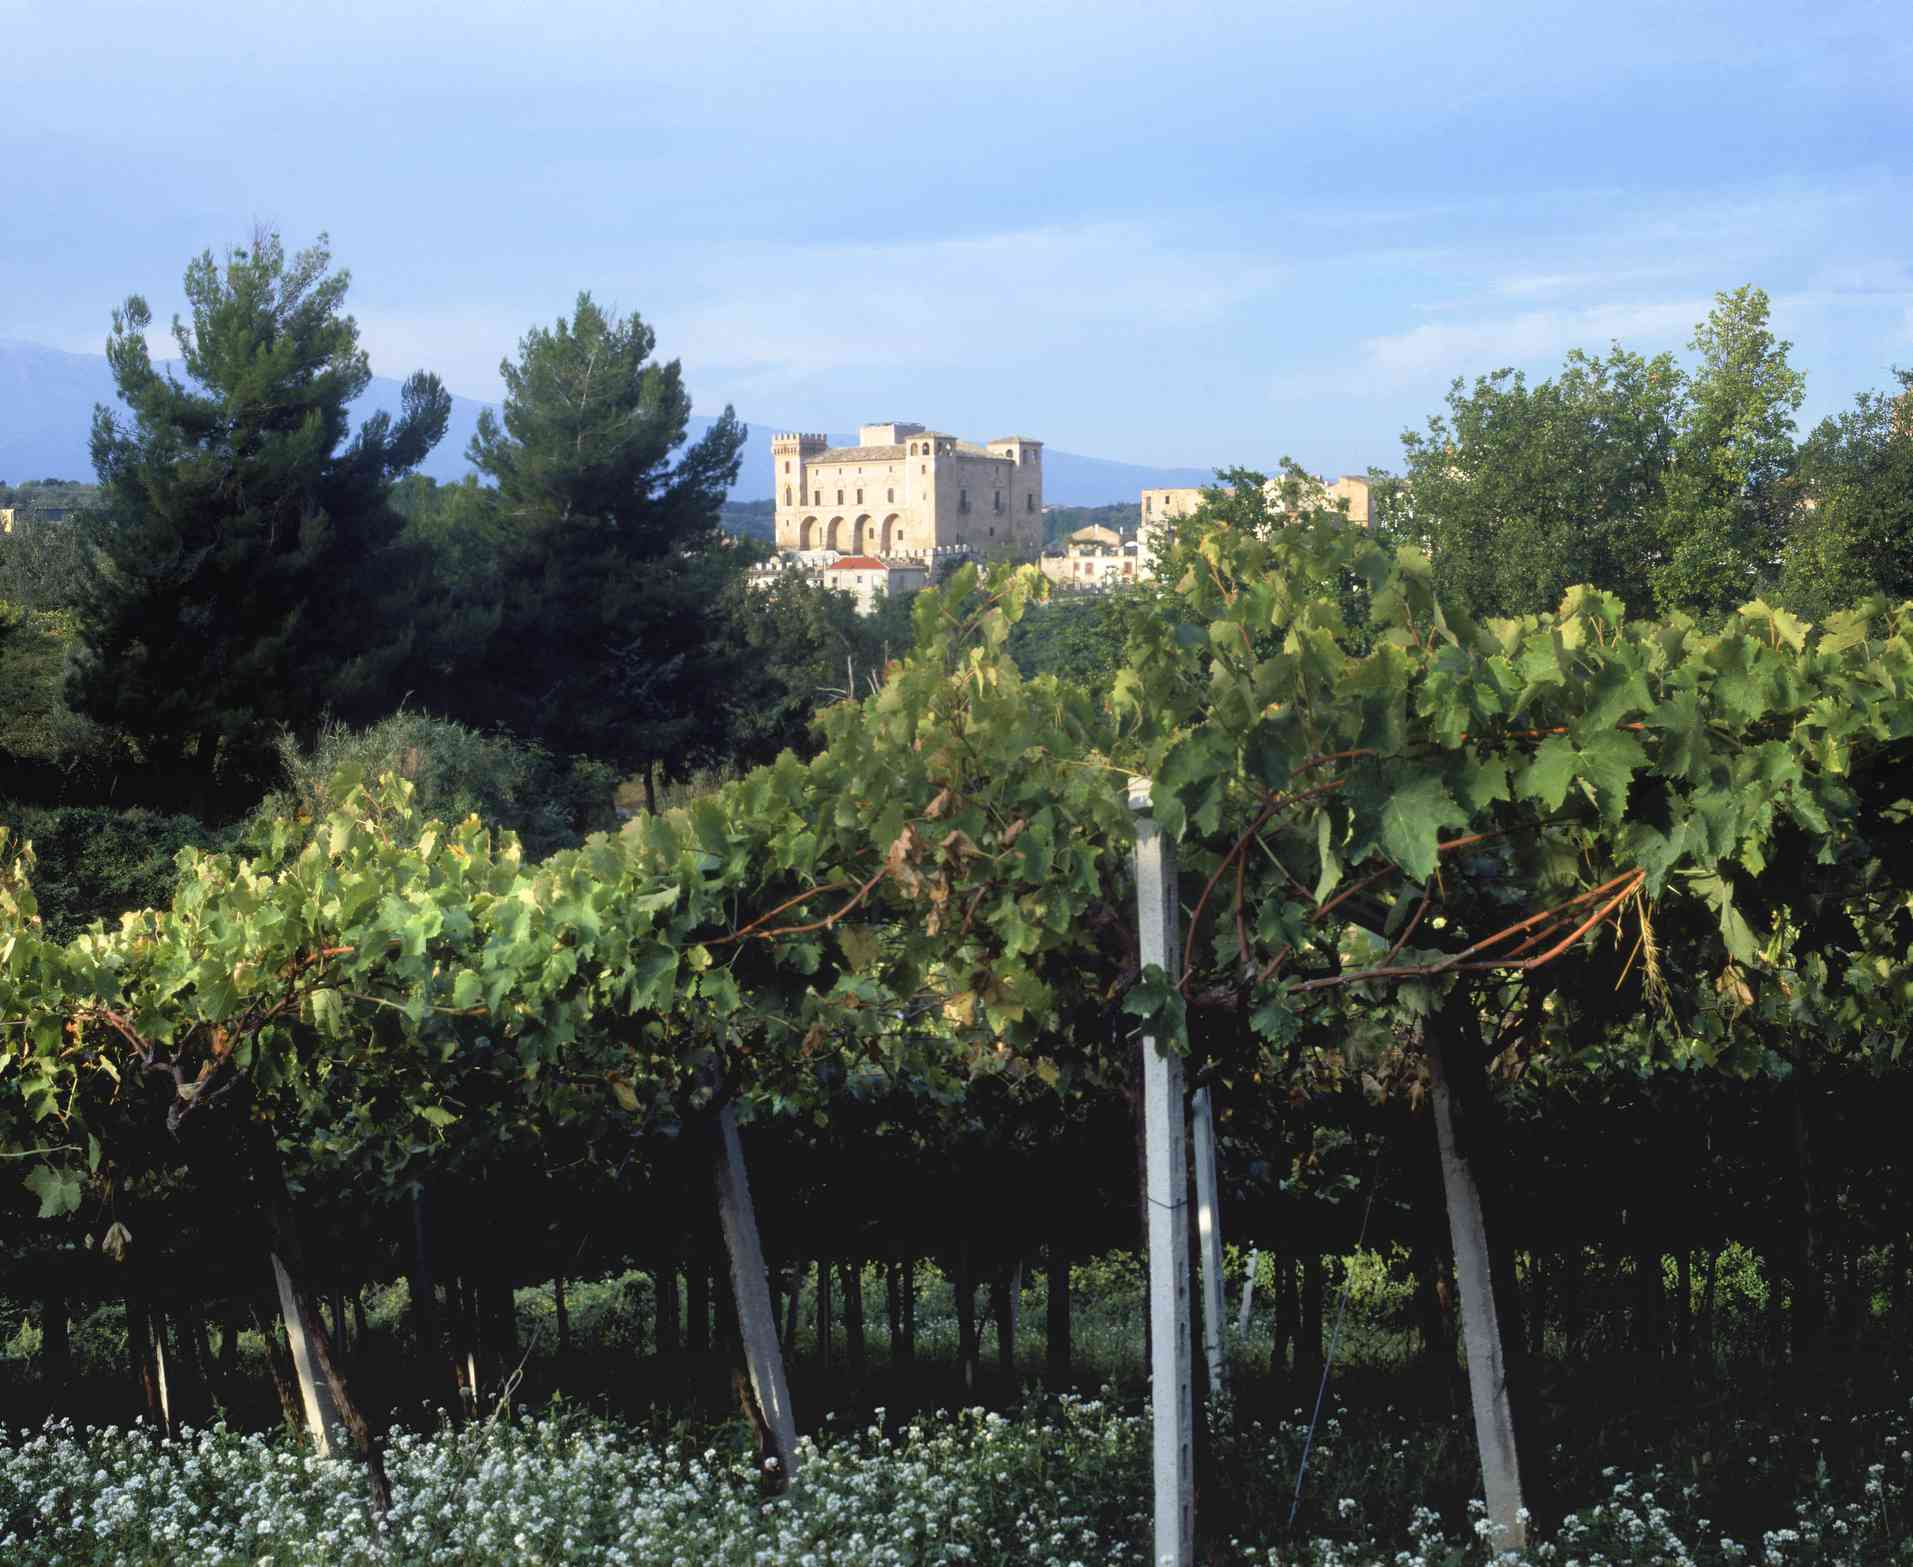 Castle of Montepulicano d'Abruzzo with vineyard